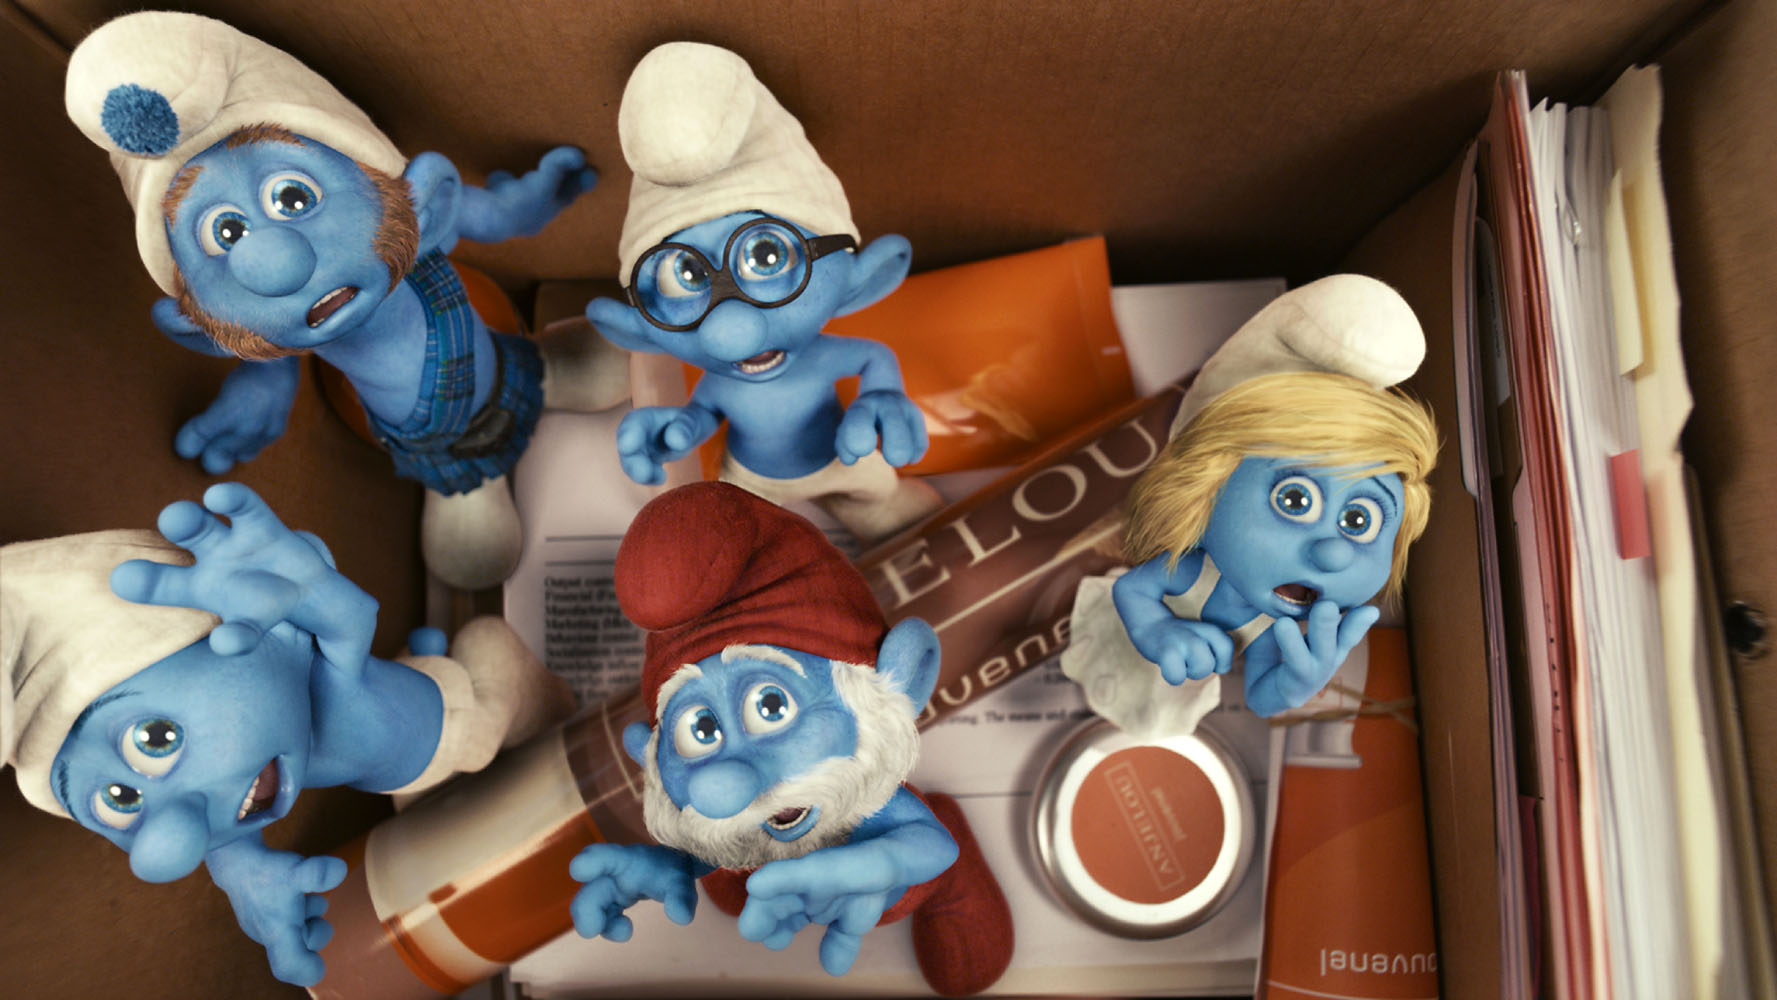 the smurfs sued